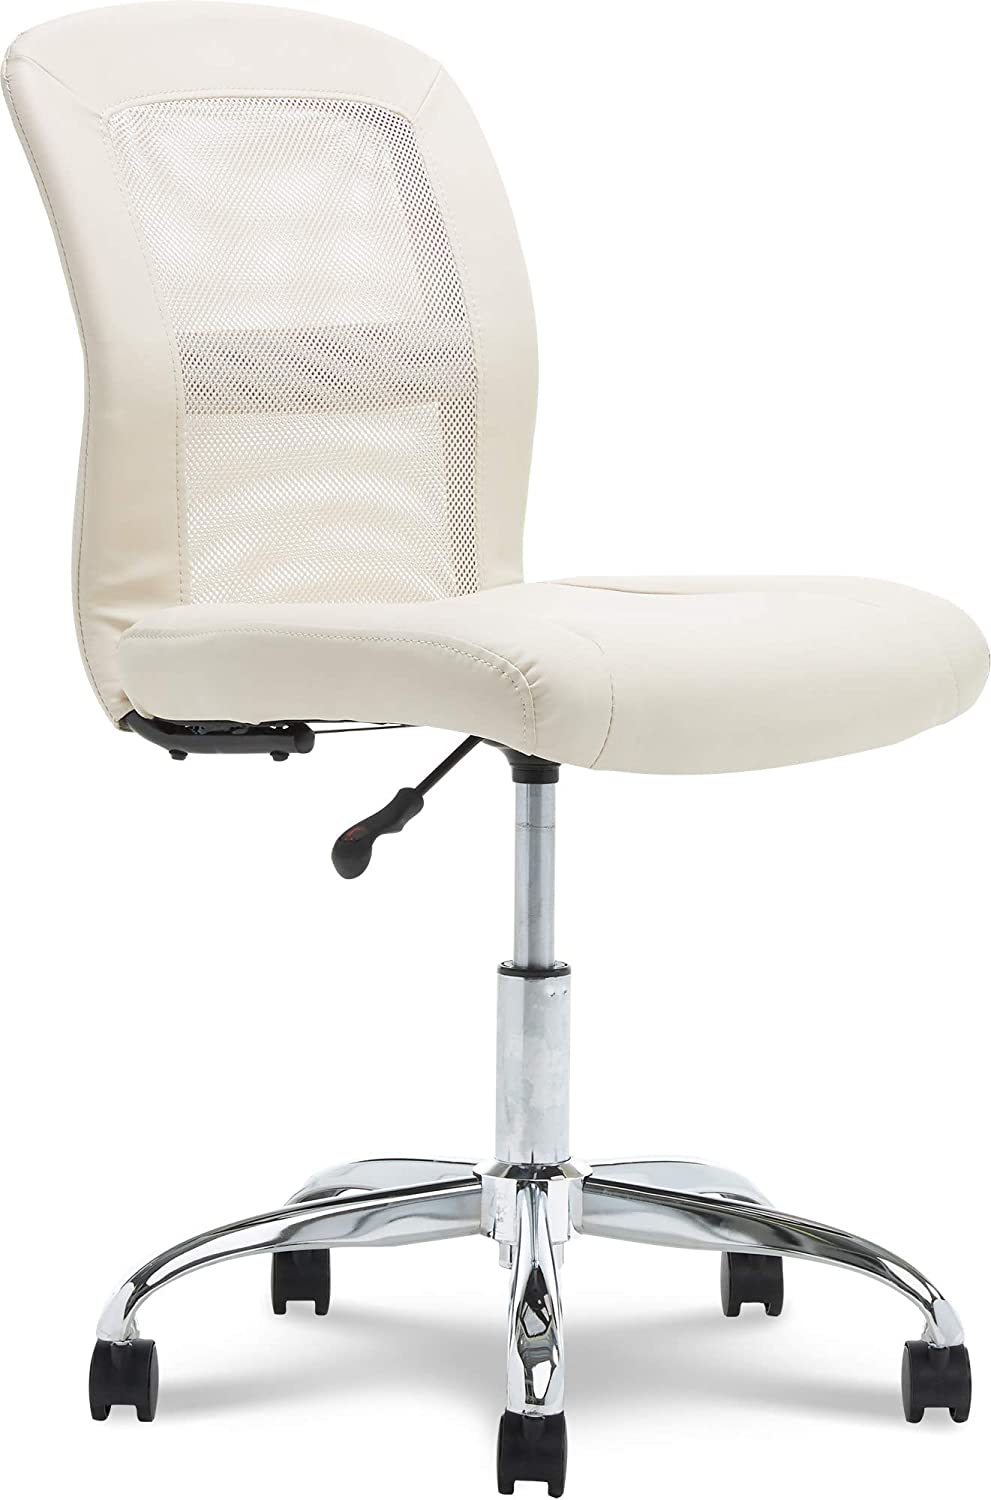 Serta Essentials Ergonomic Armless Low-Back Computer Swivel Task Chair, Faux Leather and Mesh, Cream